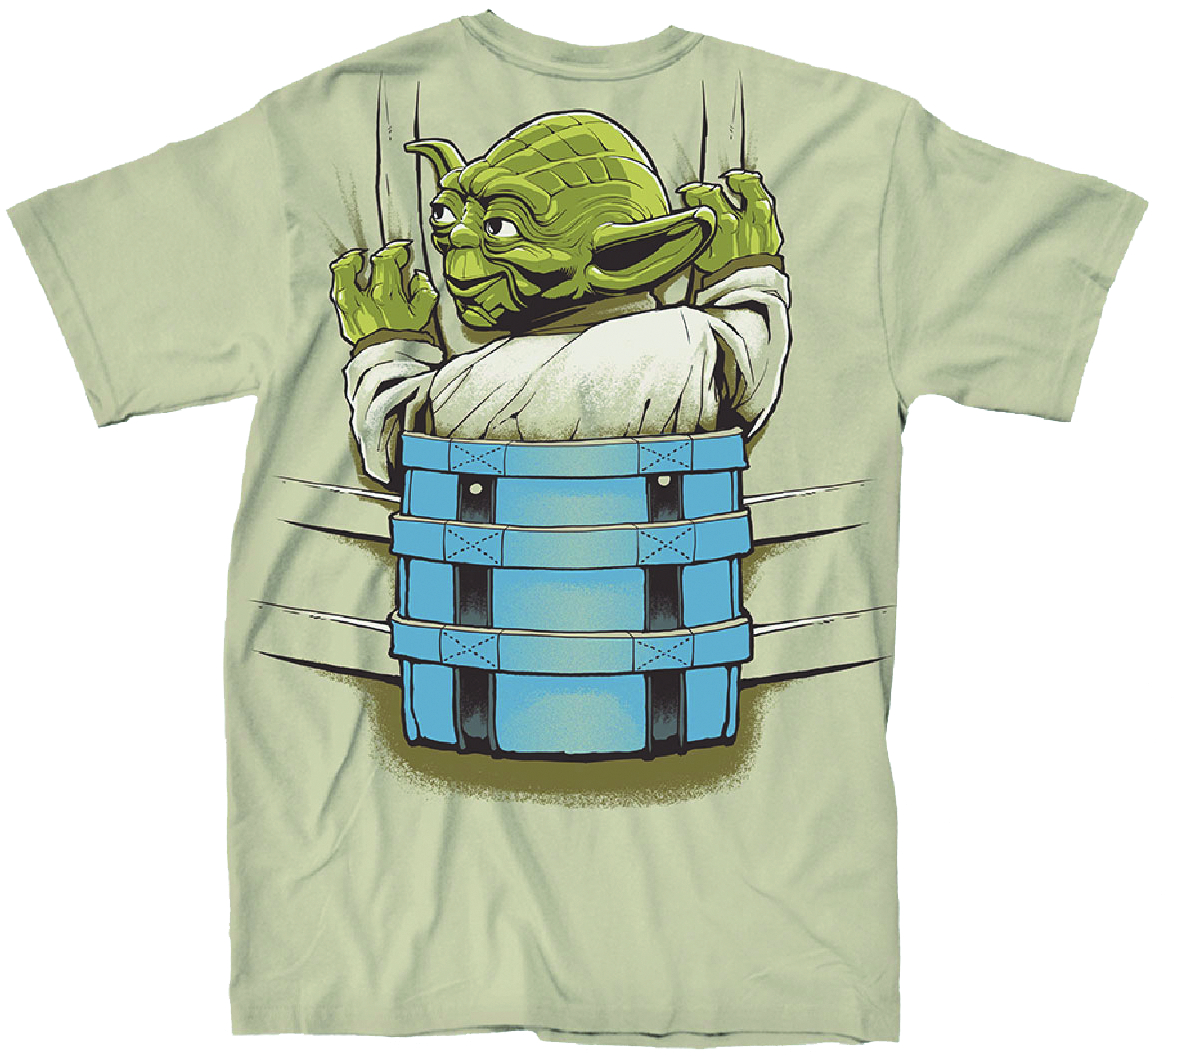 STAR WARS YODA BACKPACK PX SAND T/S XXL